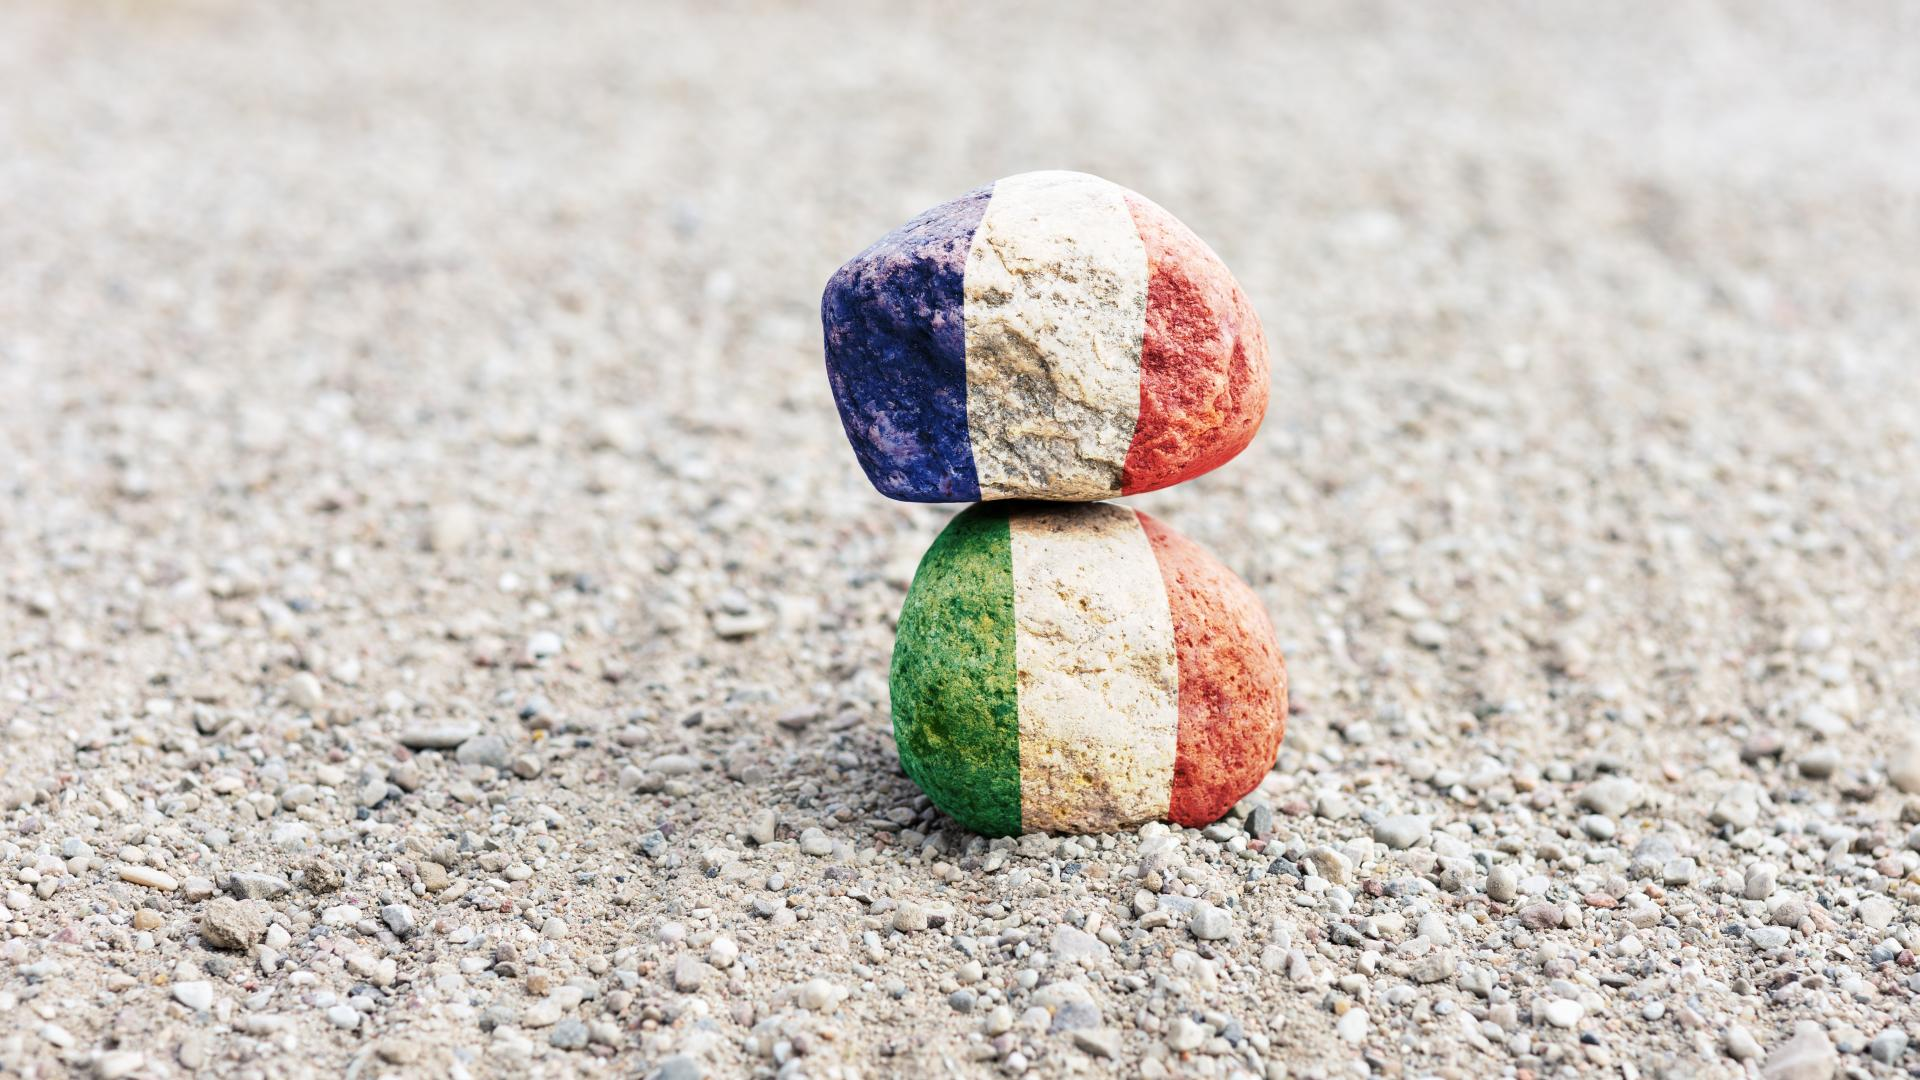 France and Italian flag painted on rocks